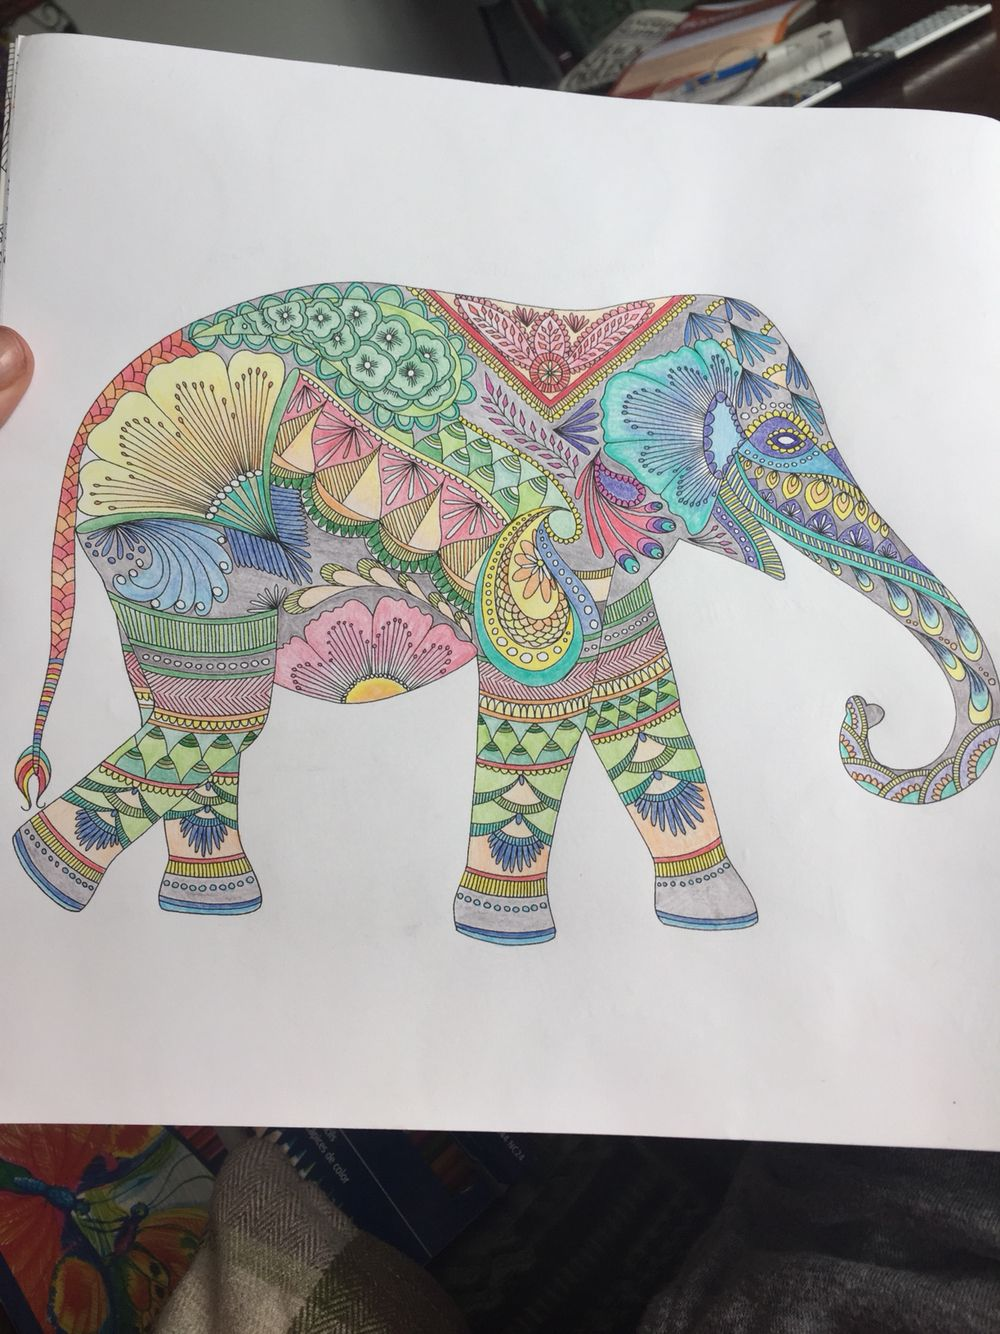 Co color to draw - 17 Best Images About Colour On Pinterest Coloring Here I Go Again And Coloring Books Download Image Co Color Me Draw Me Animal Kingdom